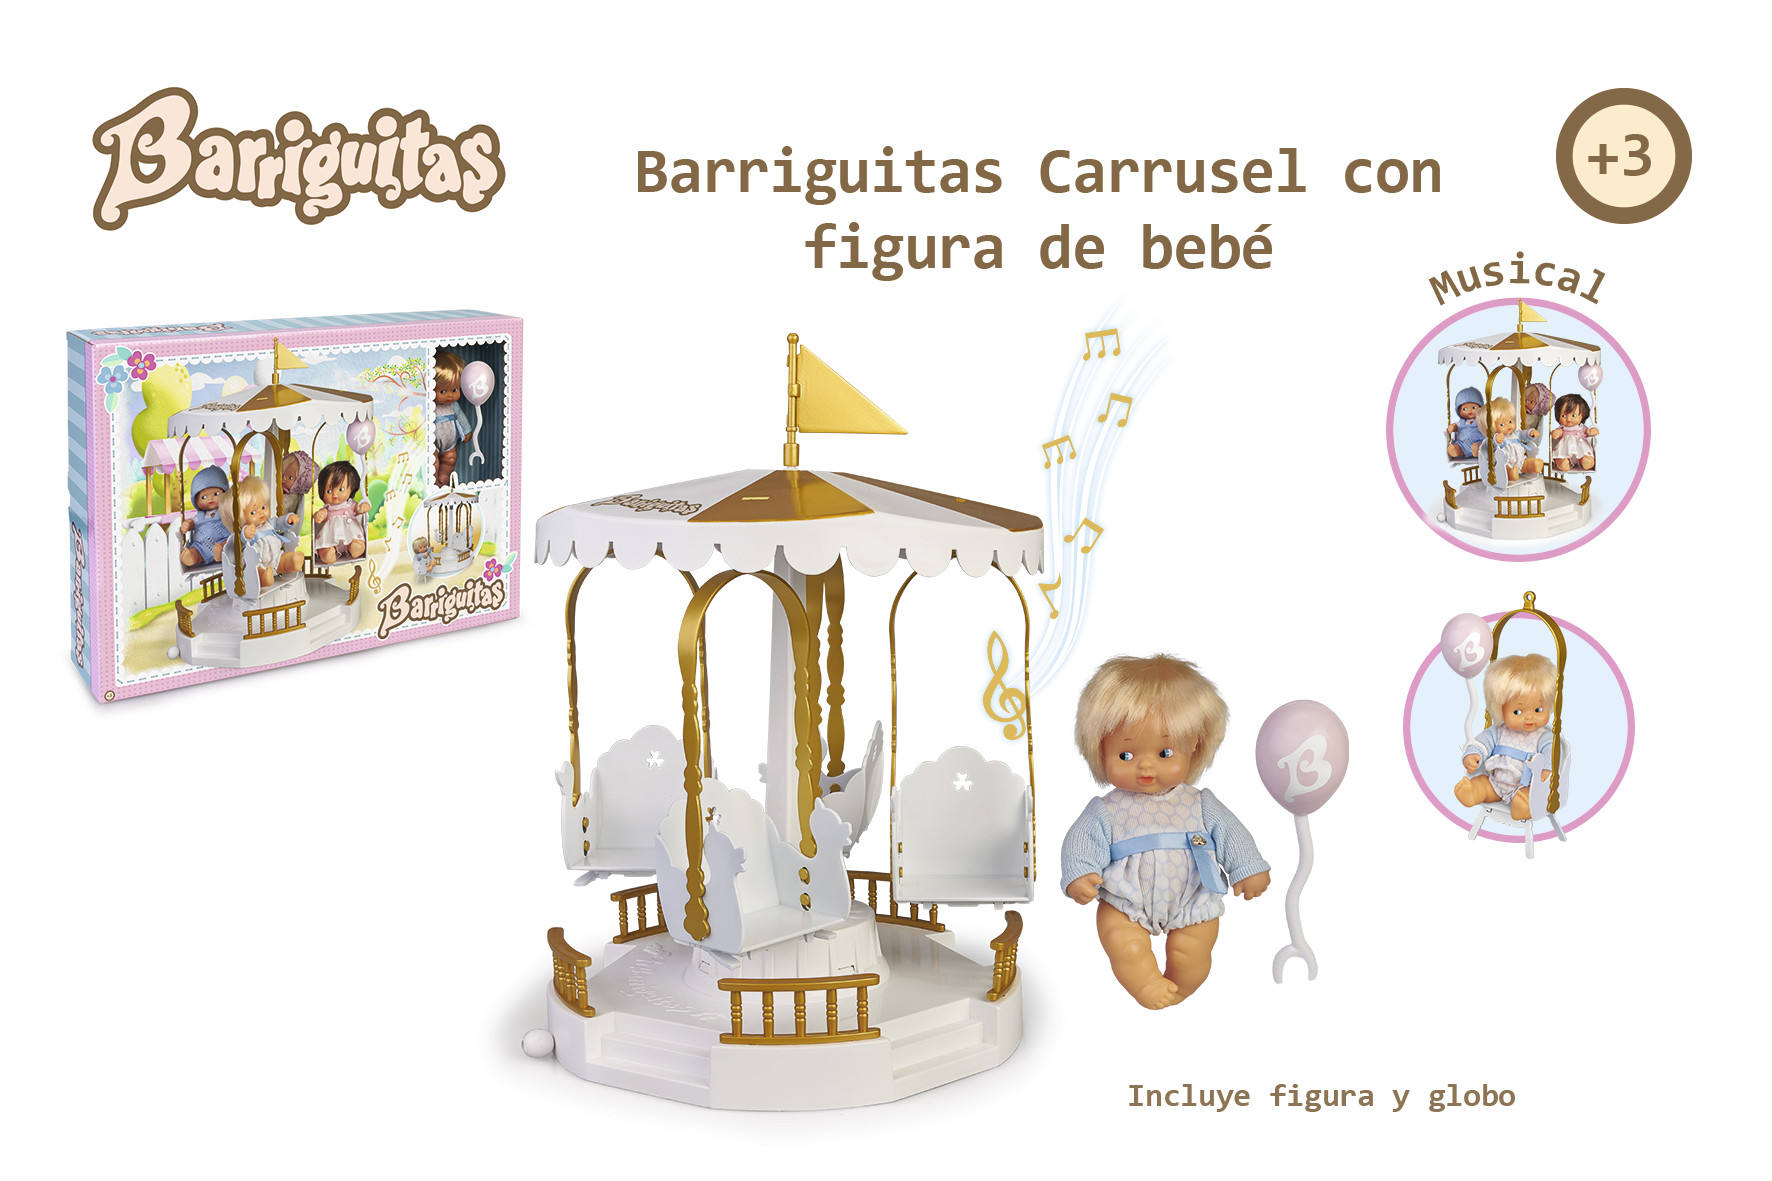 CARRUSEL MUSICAL BARRIGUITAS 15806 - N37720